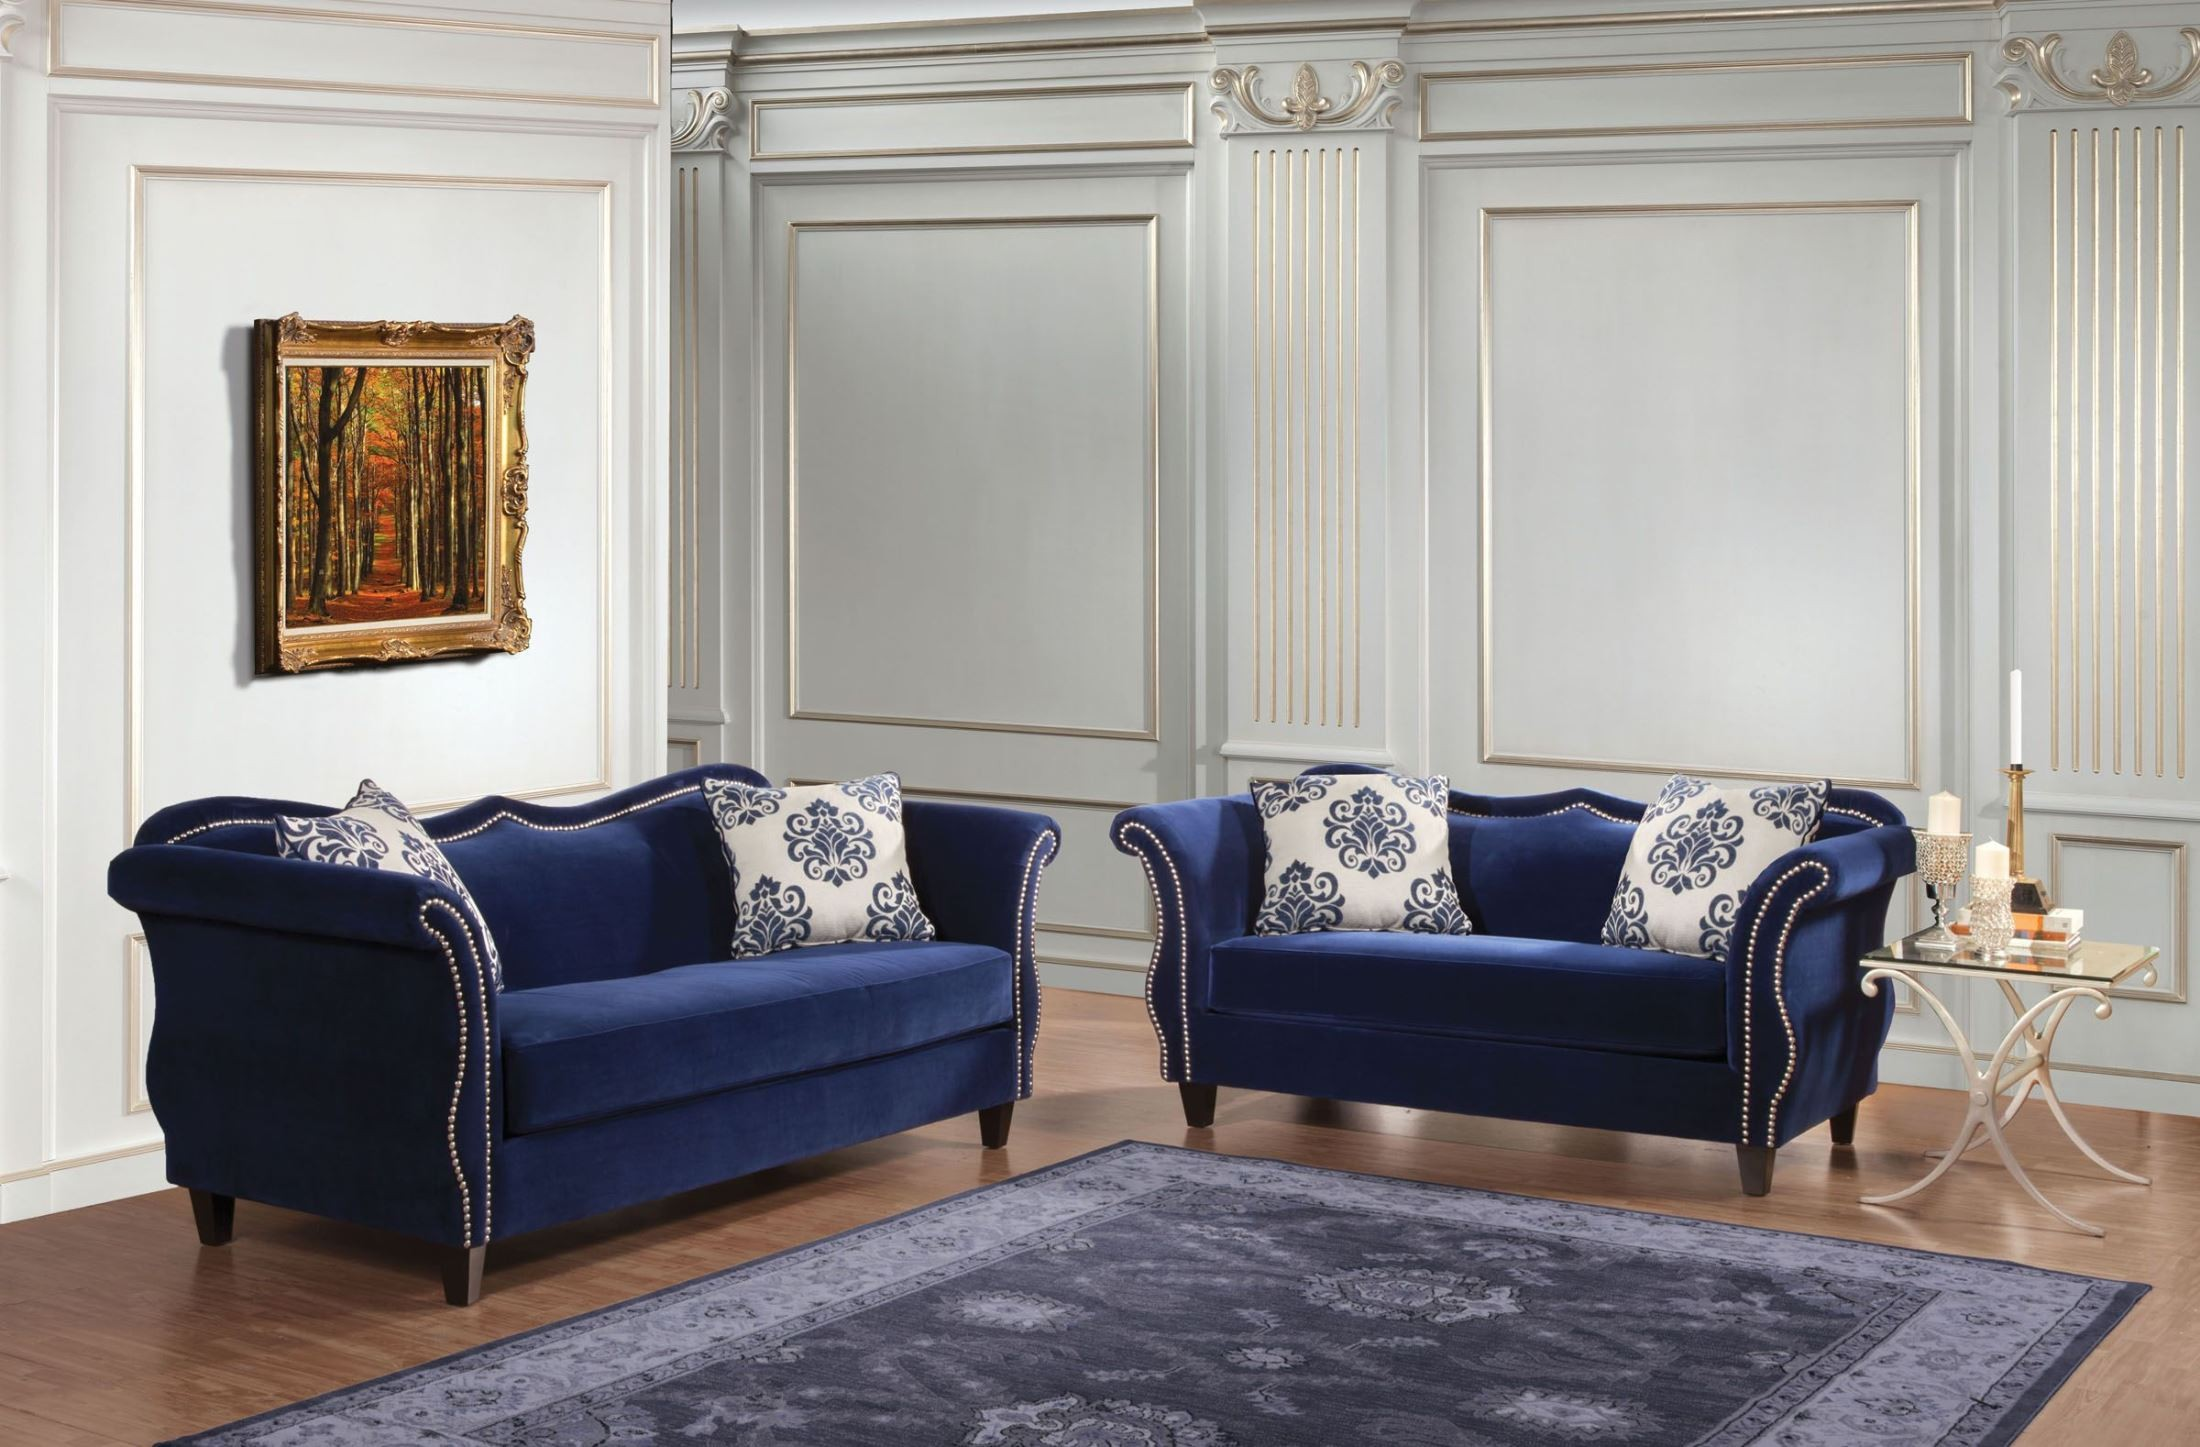 Zaffiro royal blue living room set sm2231 sf furniture of america